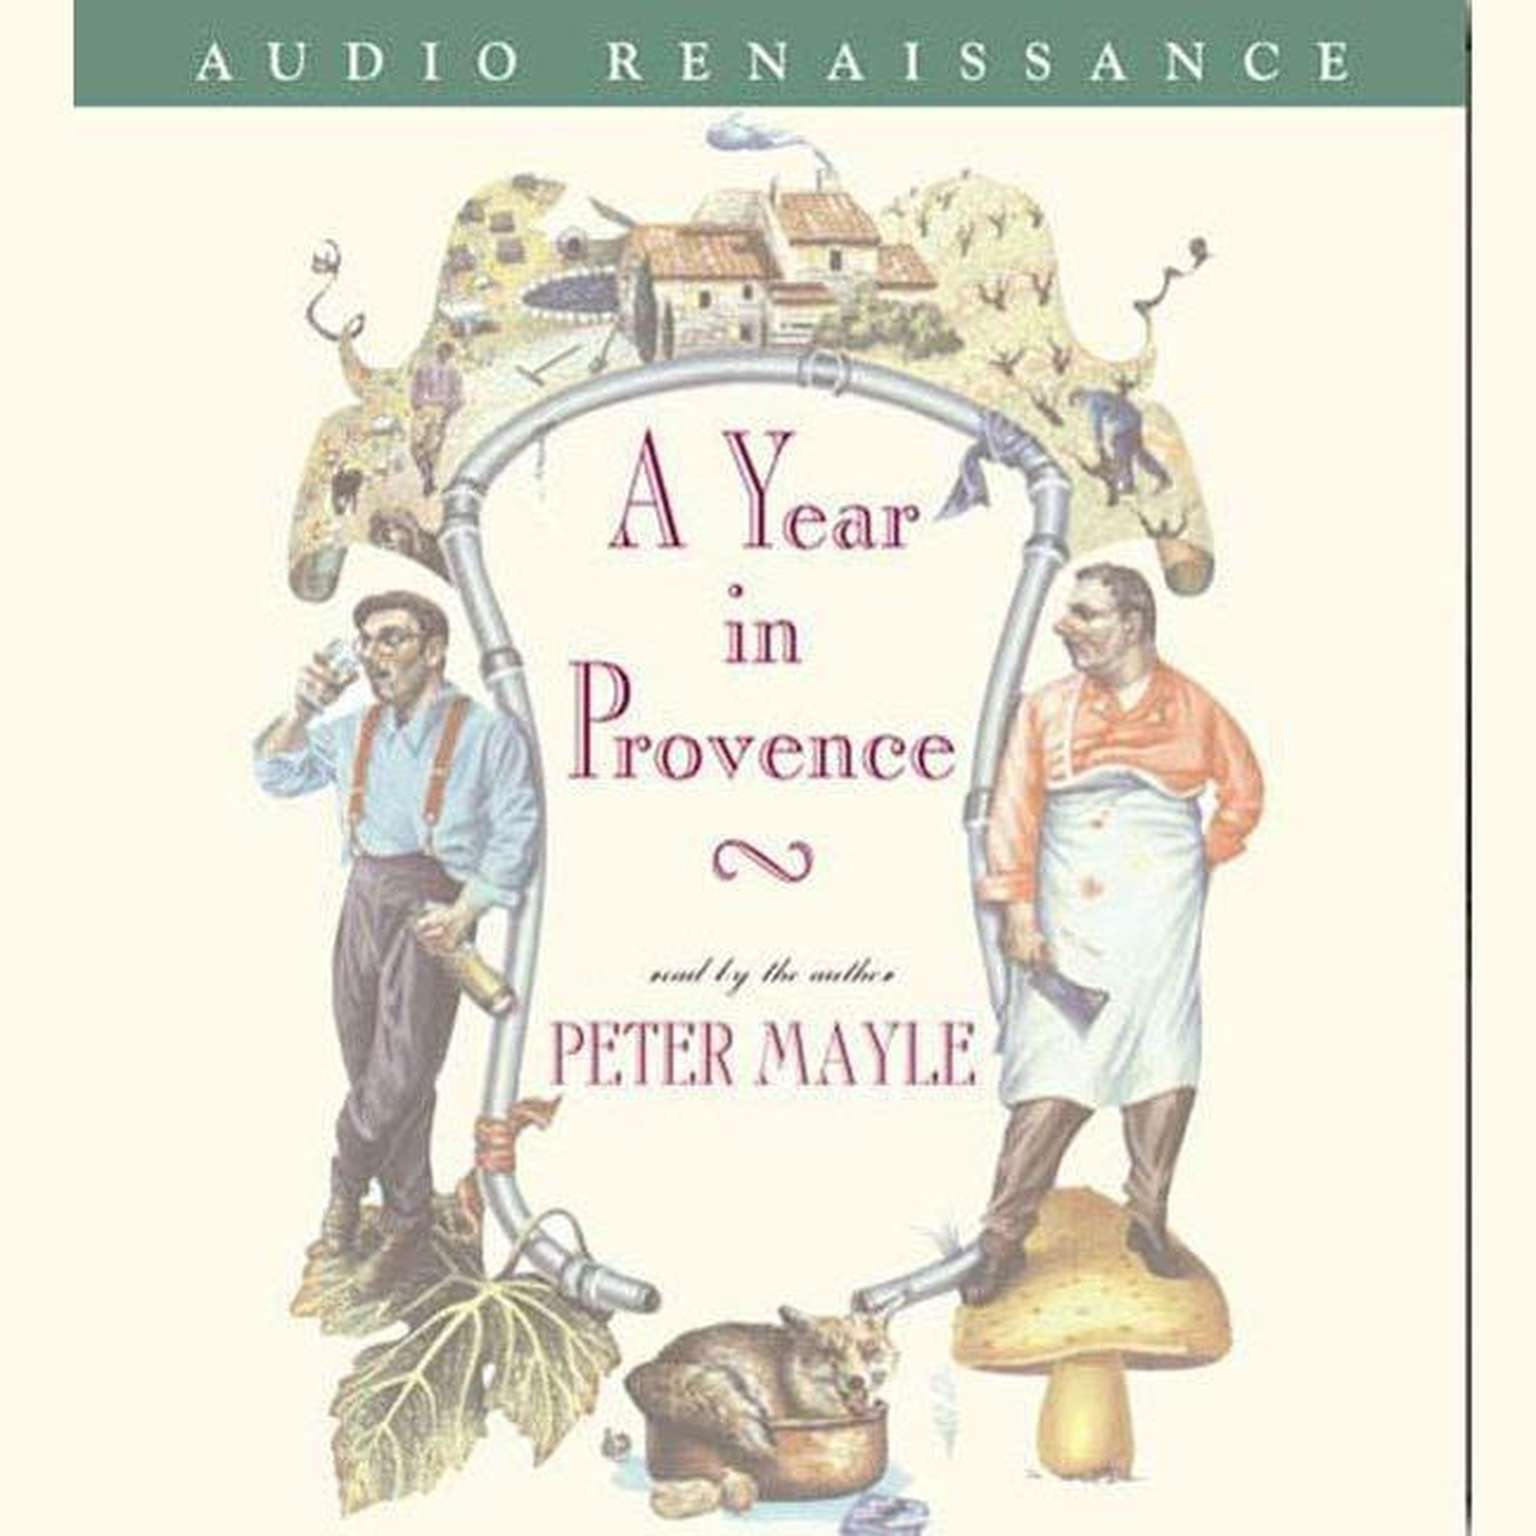 A Year in Provence (Audiobook) by Peter Mayle | Audible.com